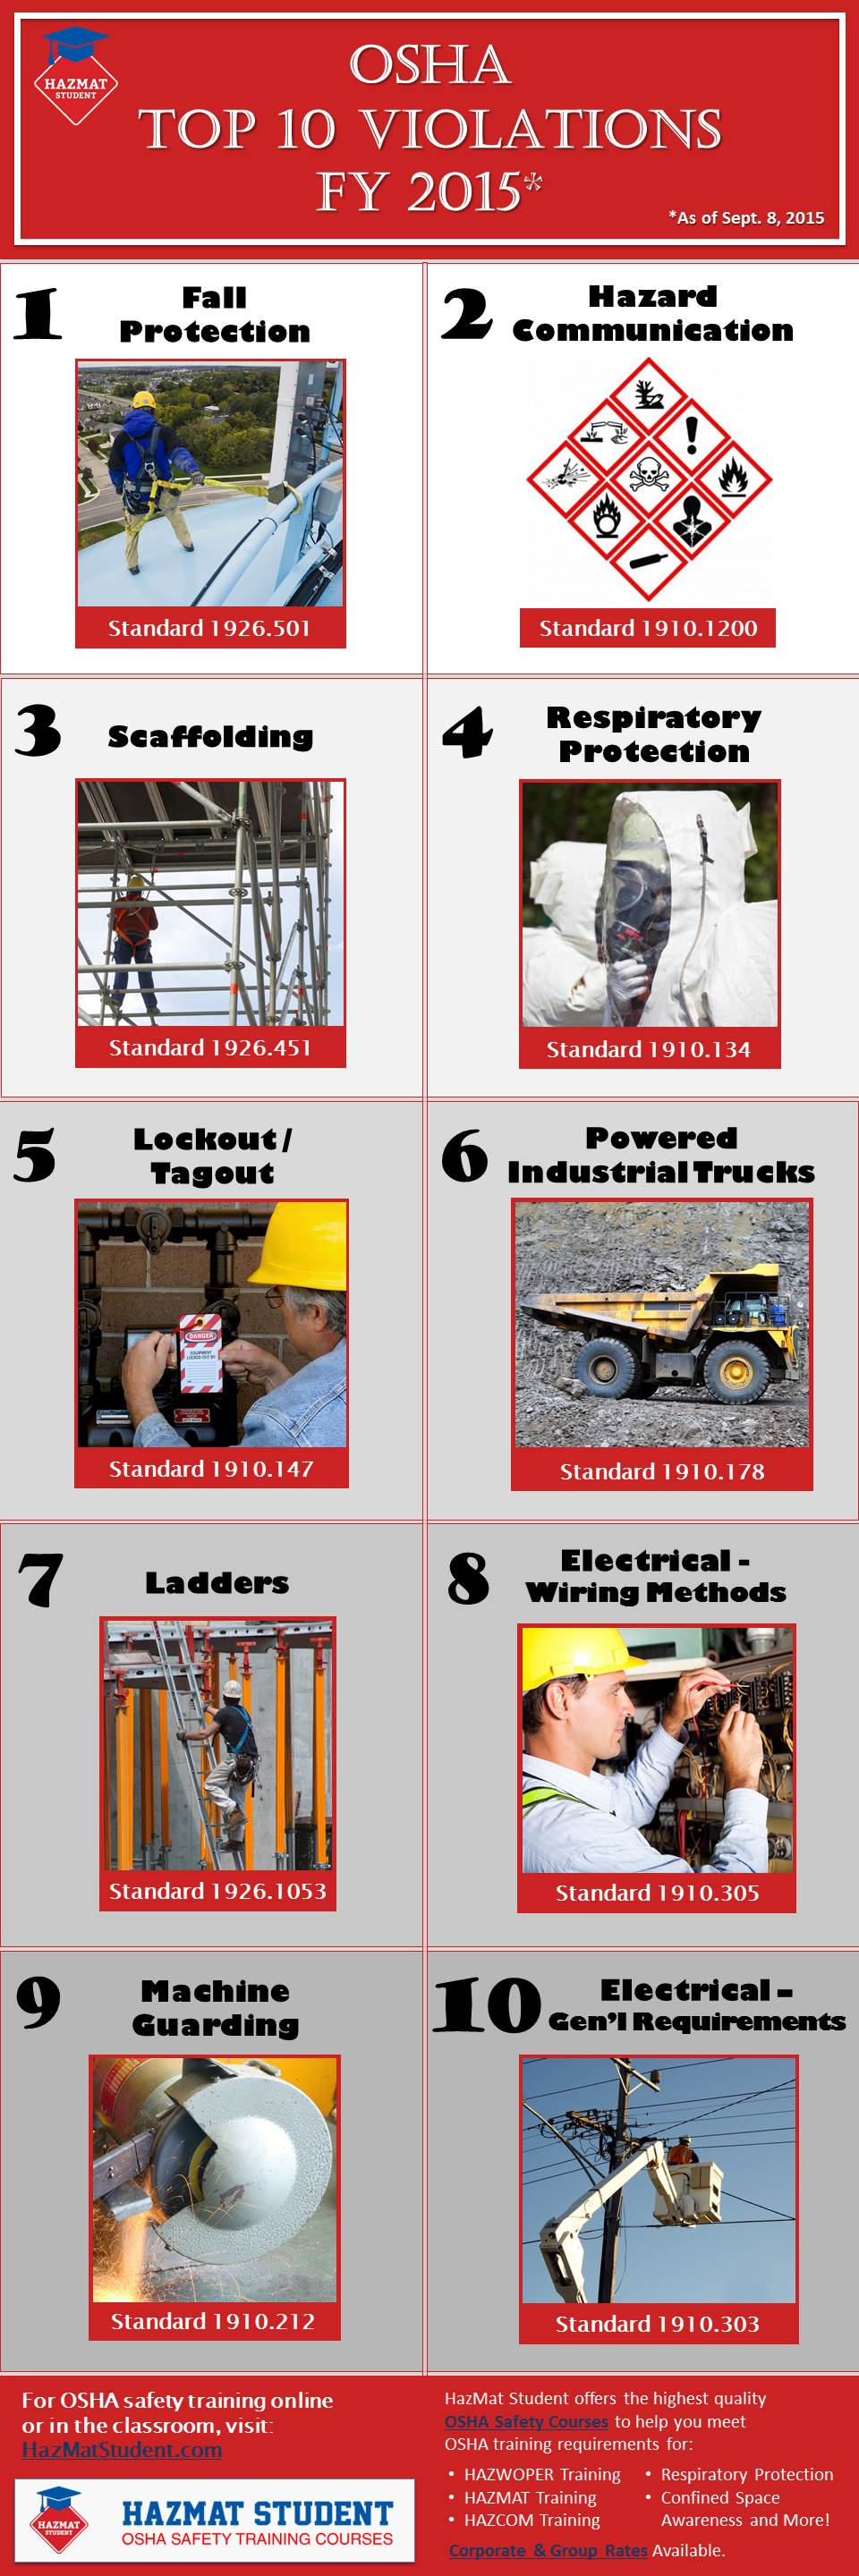 OSHA Top 10 Violations 2015. Common workplace hazards to